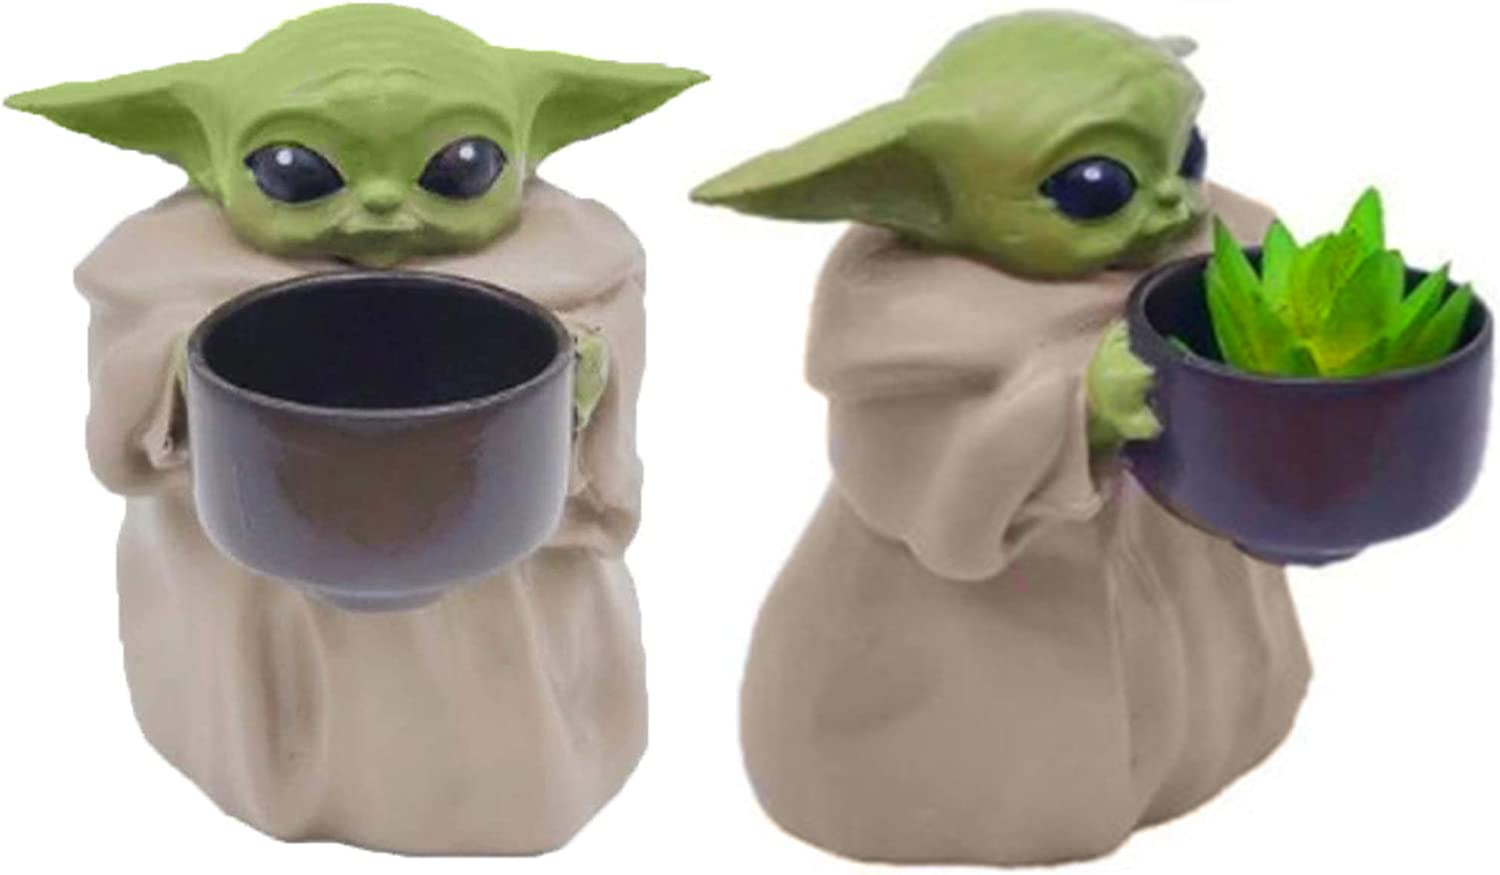 Baby Yoda Planter Pot, 4.2 Inch The Child Holding Cup Creative Ornament Flower Pot with Hole Succulent Planter Green Plants Flower Pot for Christmas Birthday Gift Garden Home Décor